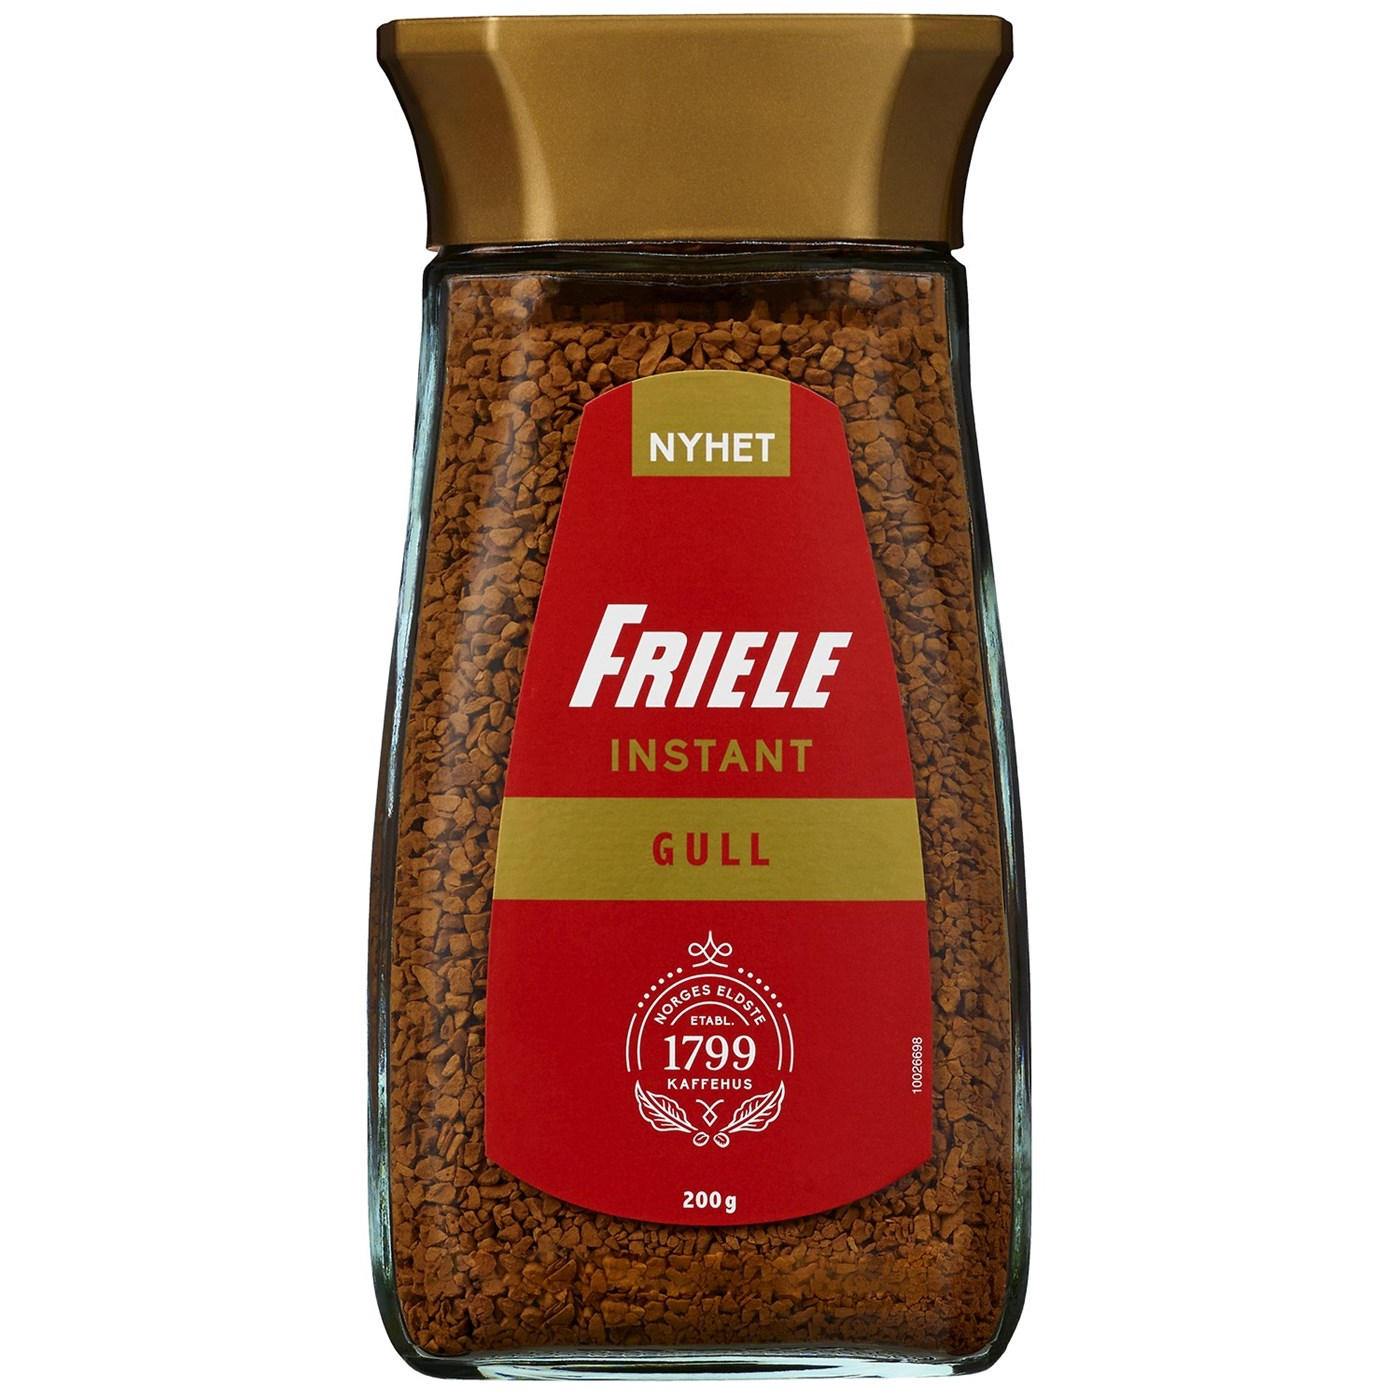 FRIELE INSTANT GULL GLASS 200G